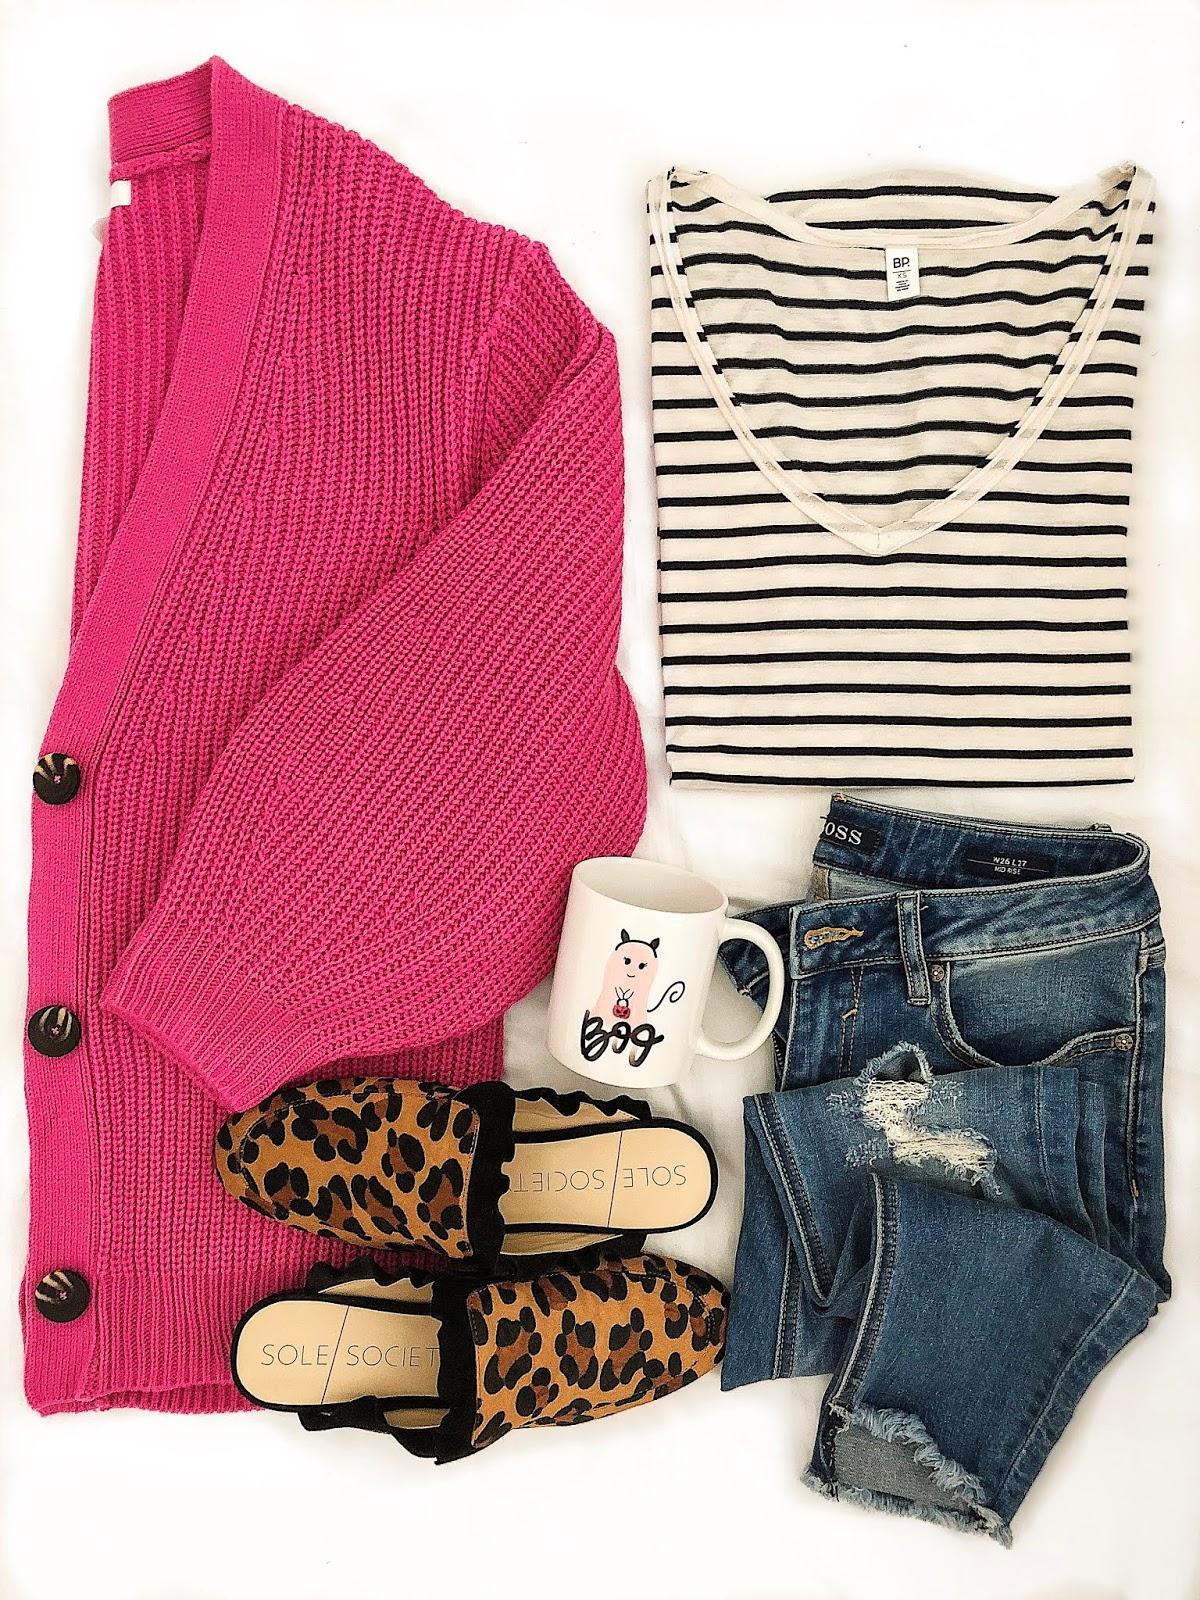 Fall Look: Pink Cardigan, Striped Tee and Leopard Mules - Something Delightful Blog